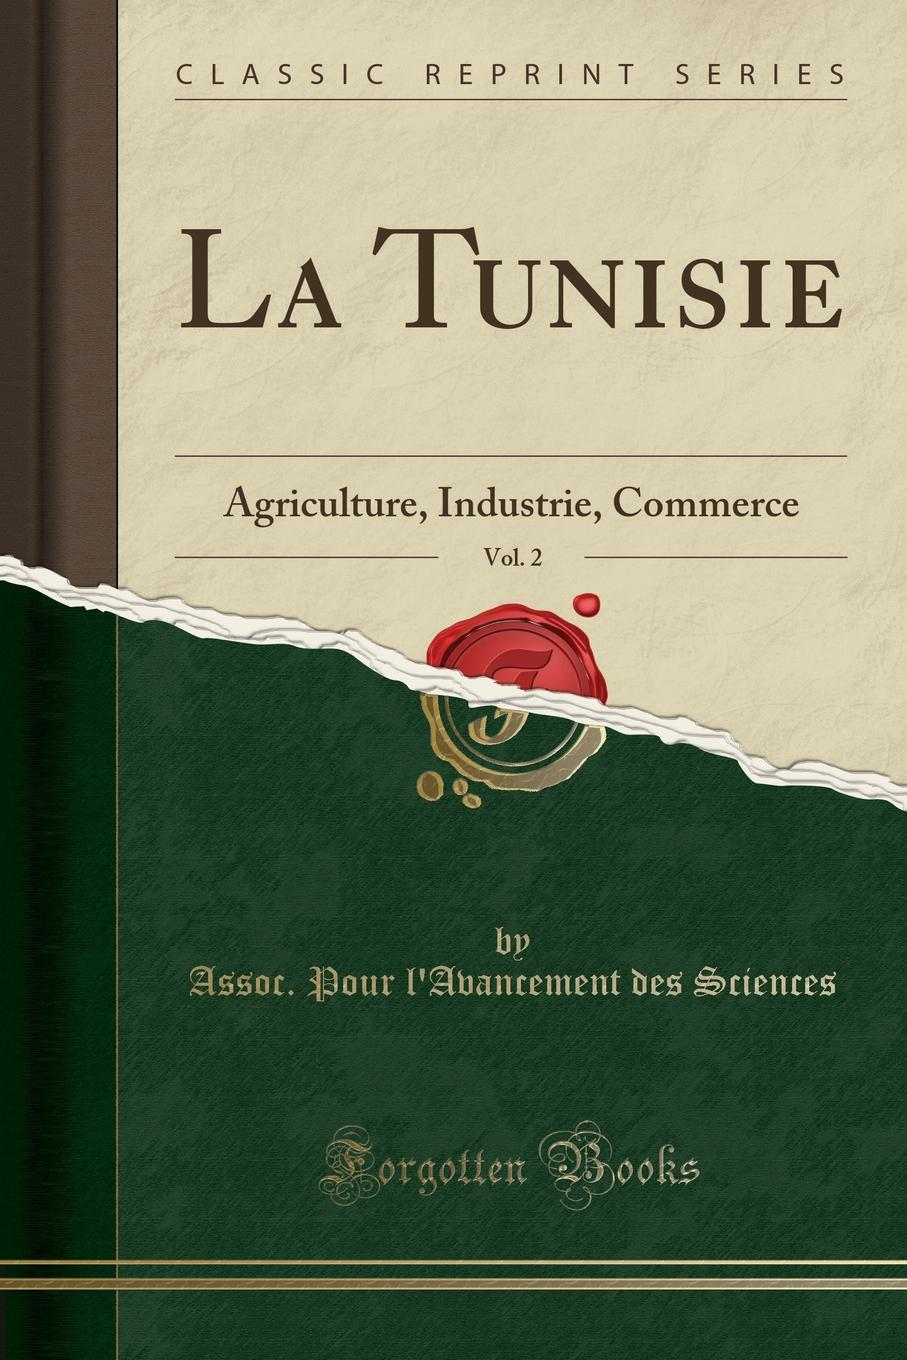 La Tunisie, Vol. 2. Agriculture, Industrie, Commerce (Classic Reprint) Excerpt from La Tunisie, Vol. 2: Agriculture, Industrie...